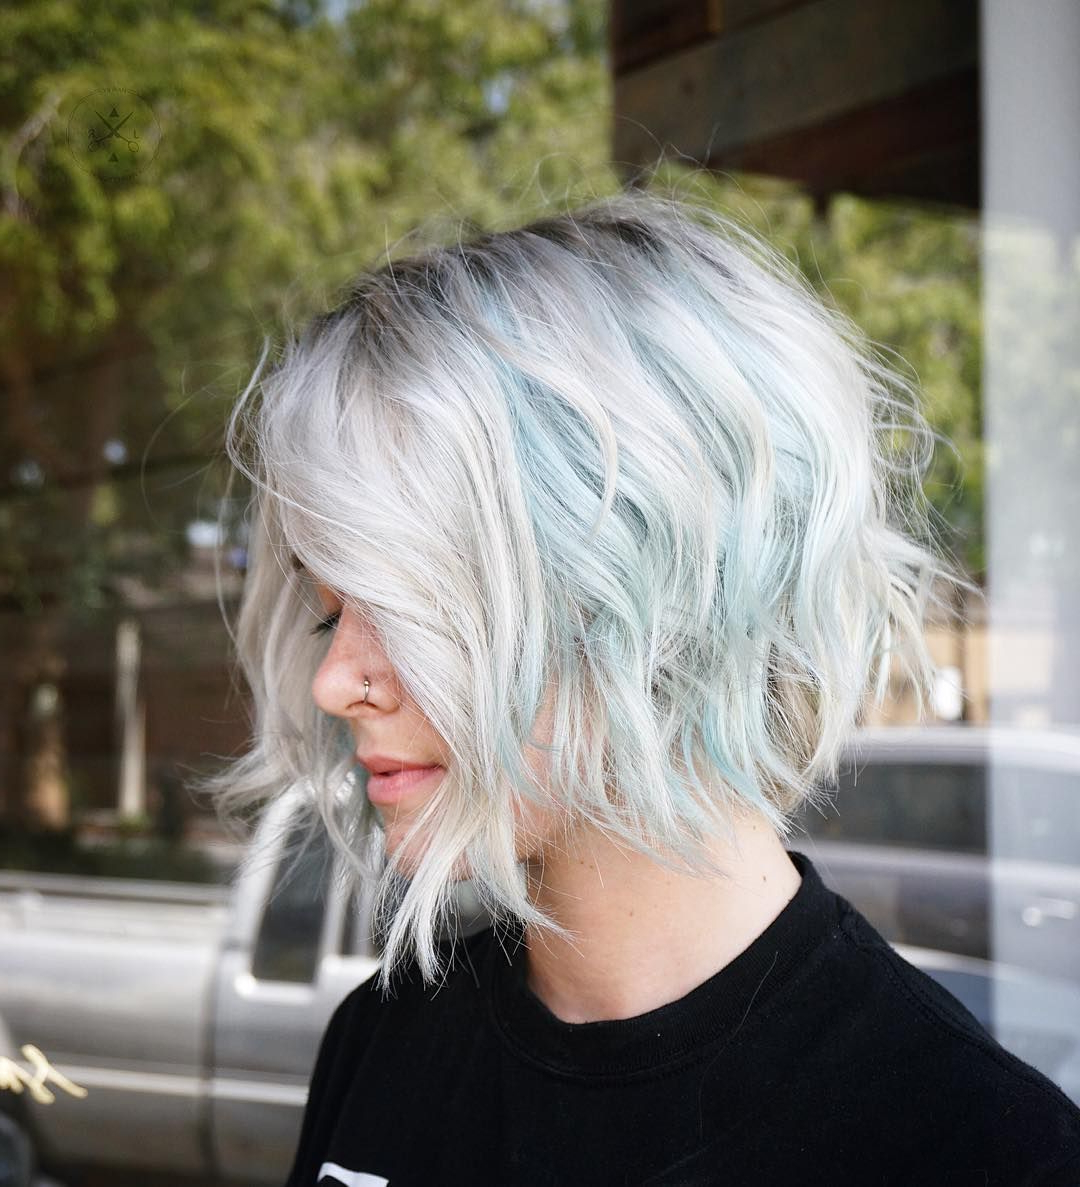 Pinhairstylezz On Colors | Pinterest | Hair, Short Hair With Regard To Sunny Blonde Finely Chopped Pixie Haircuts (View 13 of 20)